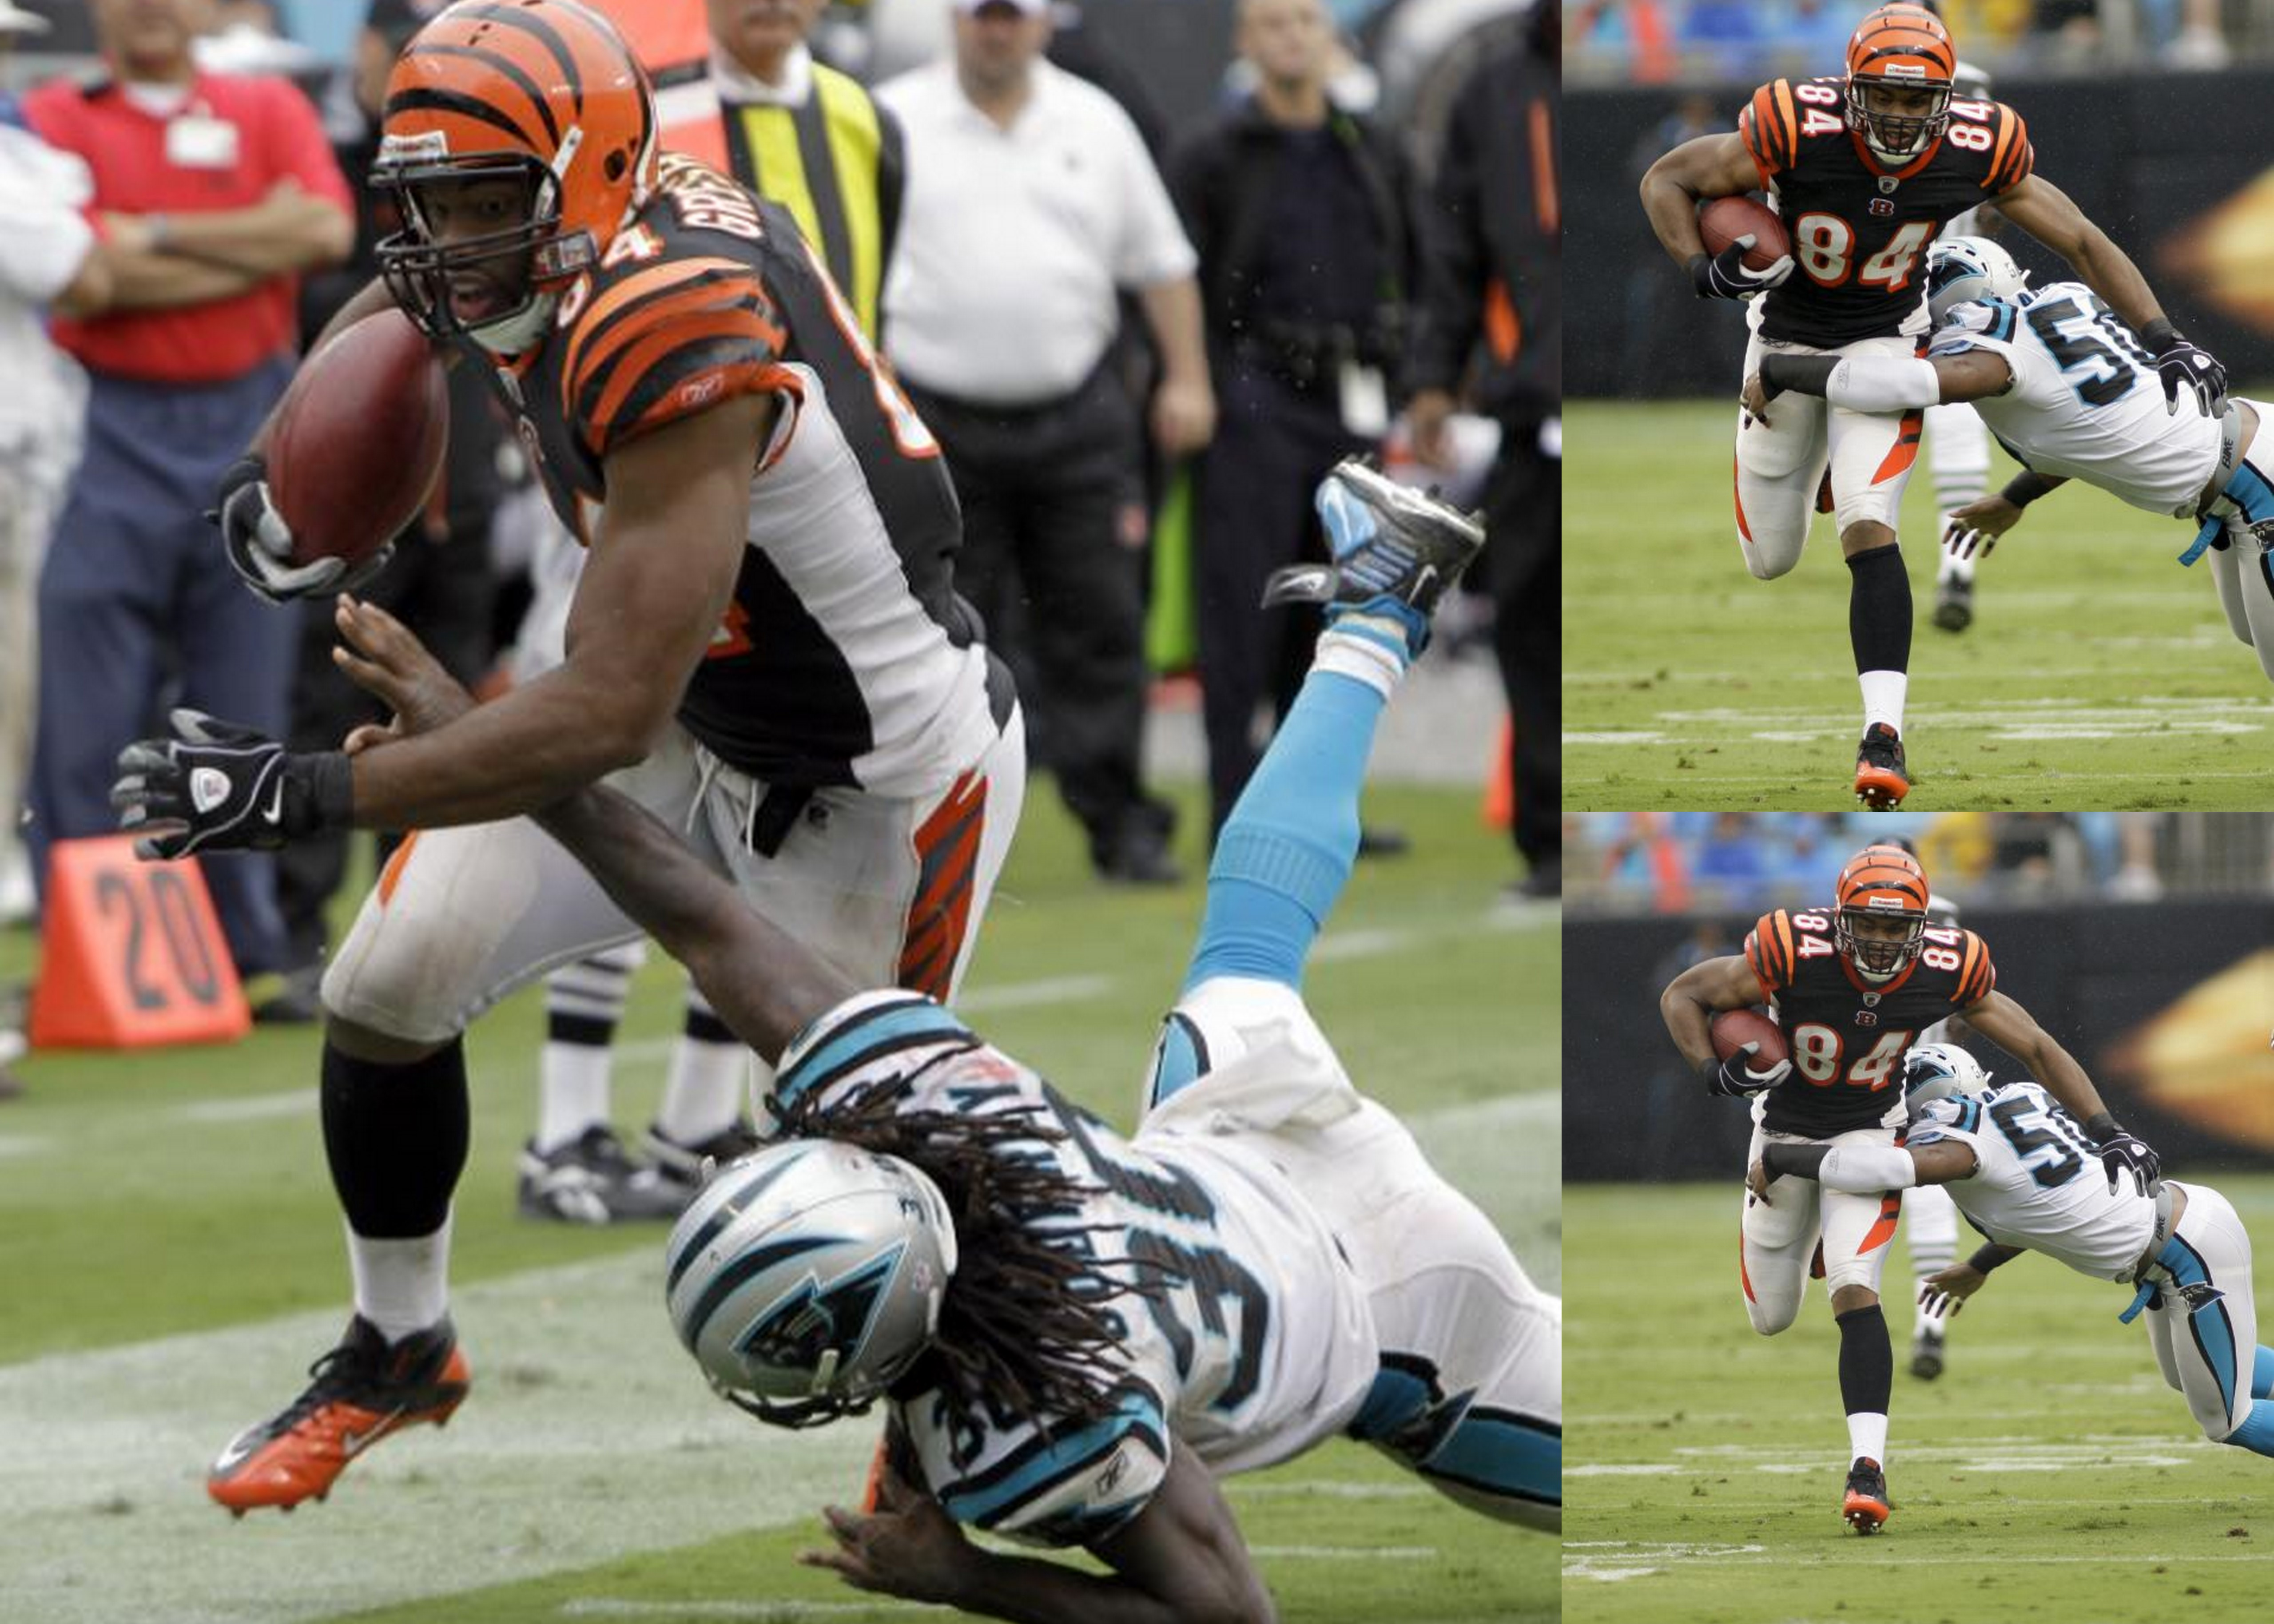 Strong End Jermaine Gresham